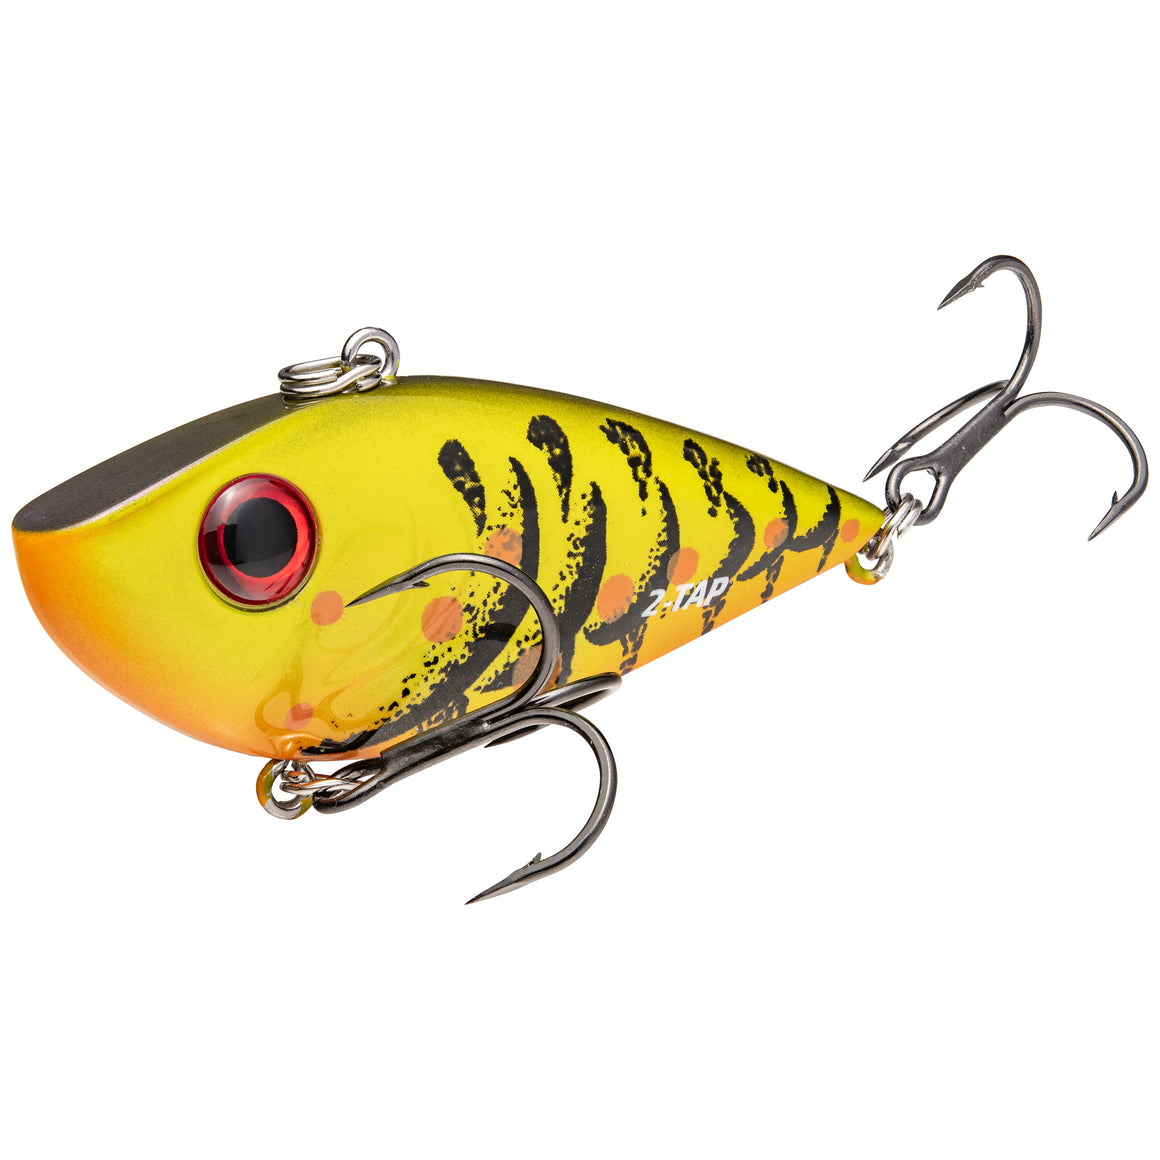 Strike King Red Eye Shad Tungsten 2-Tap Lipless Crankbait - Direct Fishing Sales